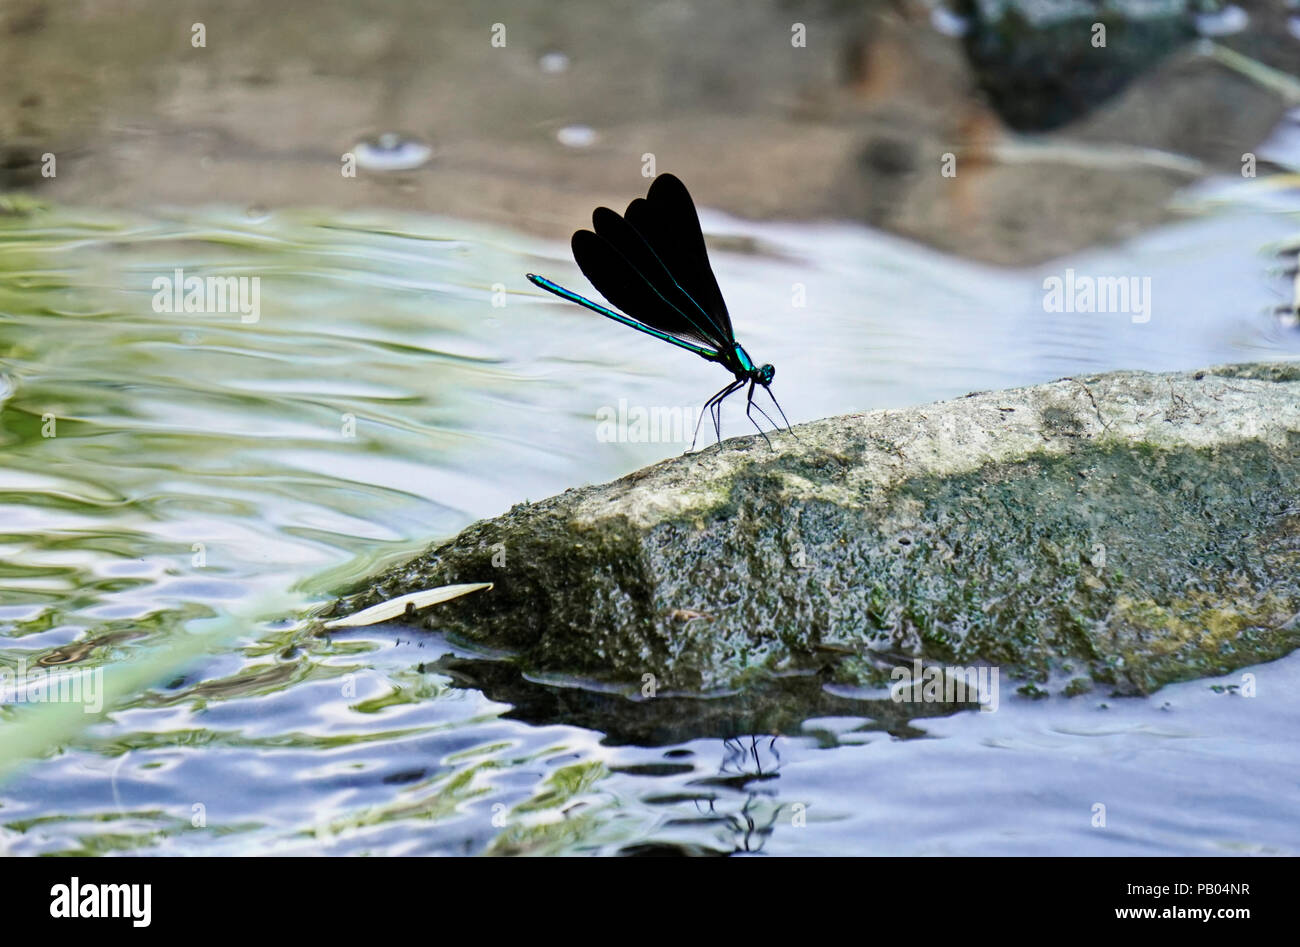 Ebony jewelwing flexing its beautiful iridious metalic green-blue colors on rock by stream in Toronto Botanical Gardens, Ontario, Canada Stock Photo